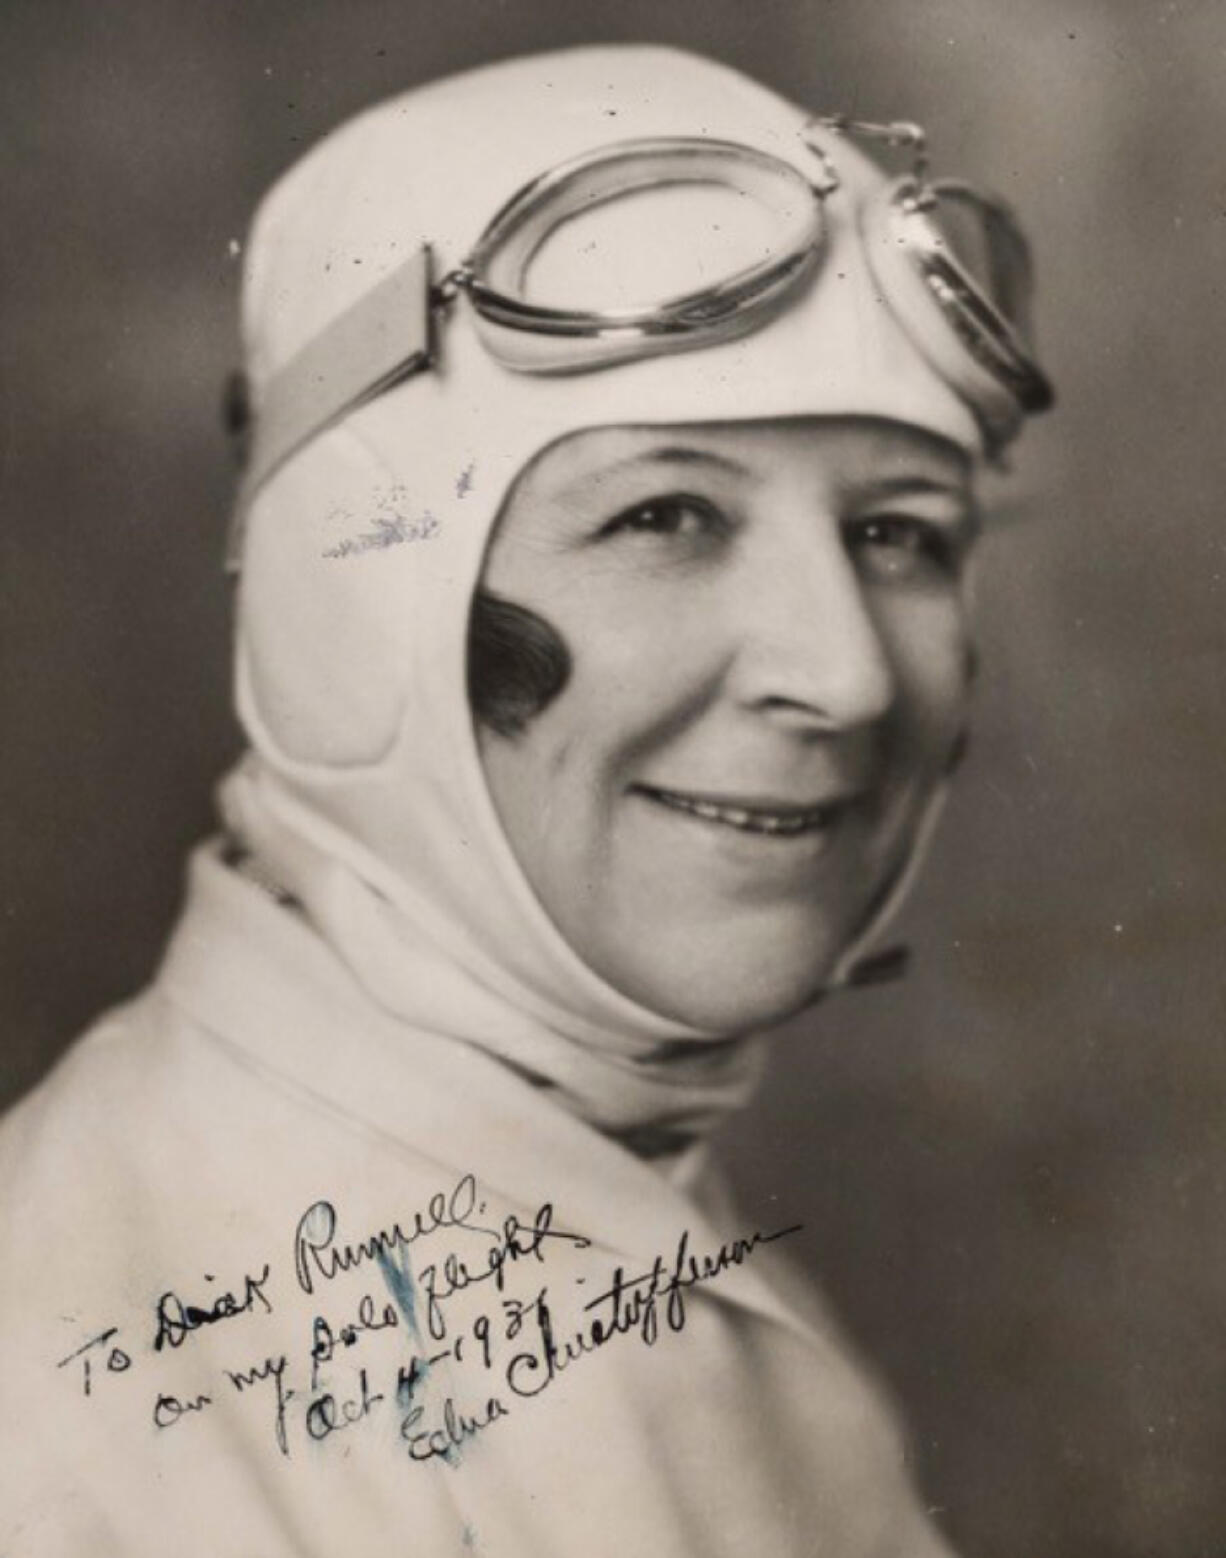 Edna Christofferson watched her daredevil husband fly off the Multnomah Hotel and land at the Vancouver Barracks successfully, only to later watch him fall 100 feet from the sky to his death while testing an experimental plane. She delayed getting her own pilot's license until late 1931. A crack shot, she was an advocate of women's self-defense using firearms. She was among the first X-ray technicians in the area and founded the Women's National Aeronautic Association to promote women's flying.